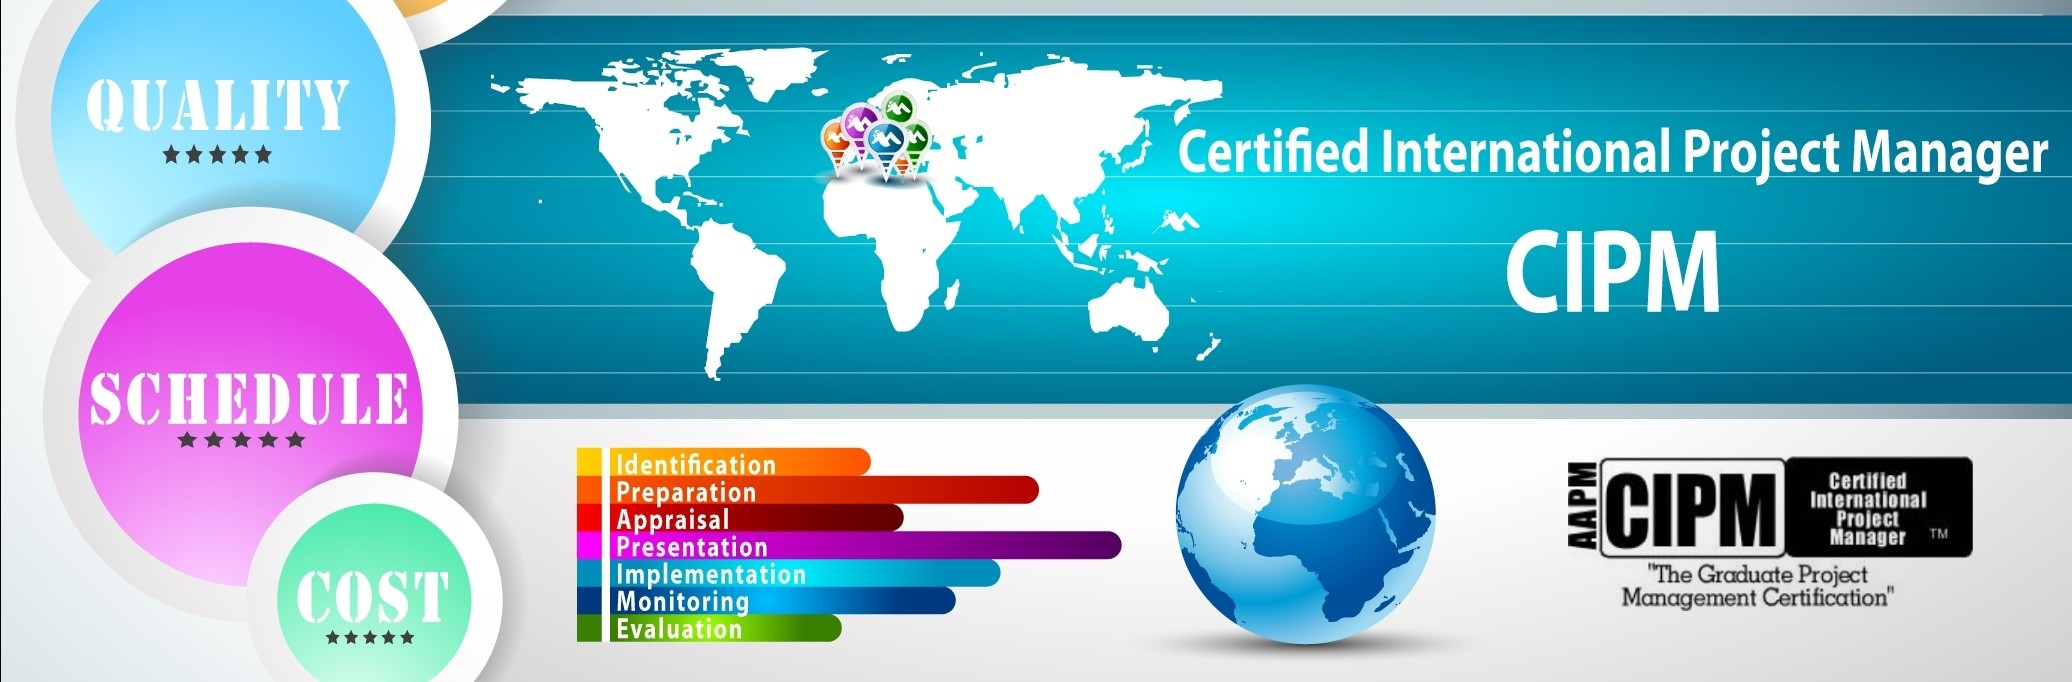 09 certified international project manager cipm certified international project manager cipm xflitez Image collections